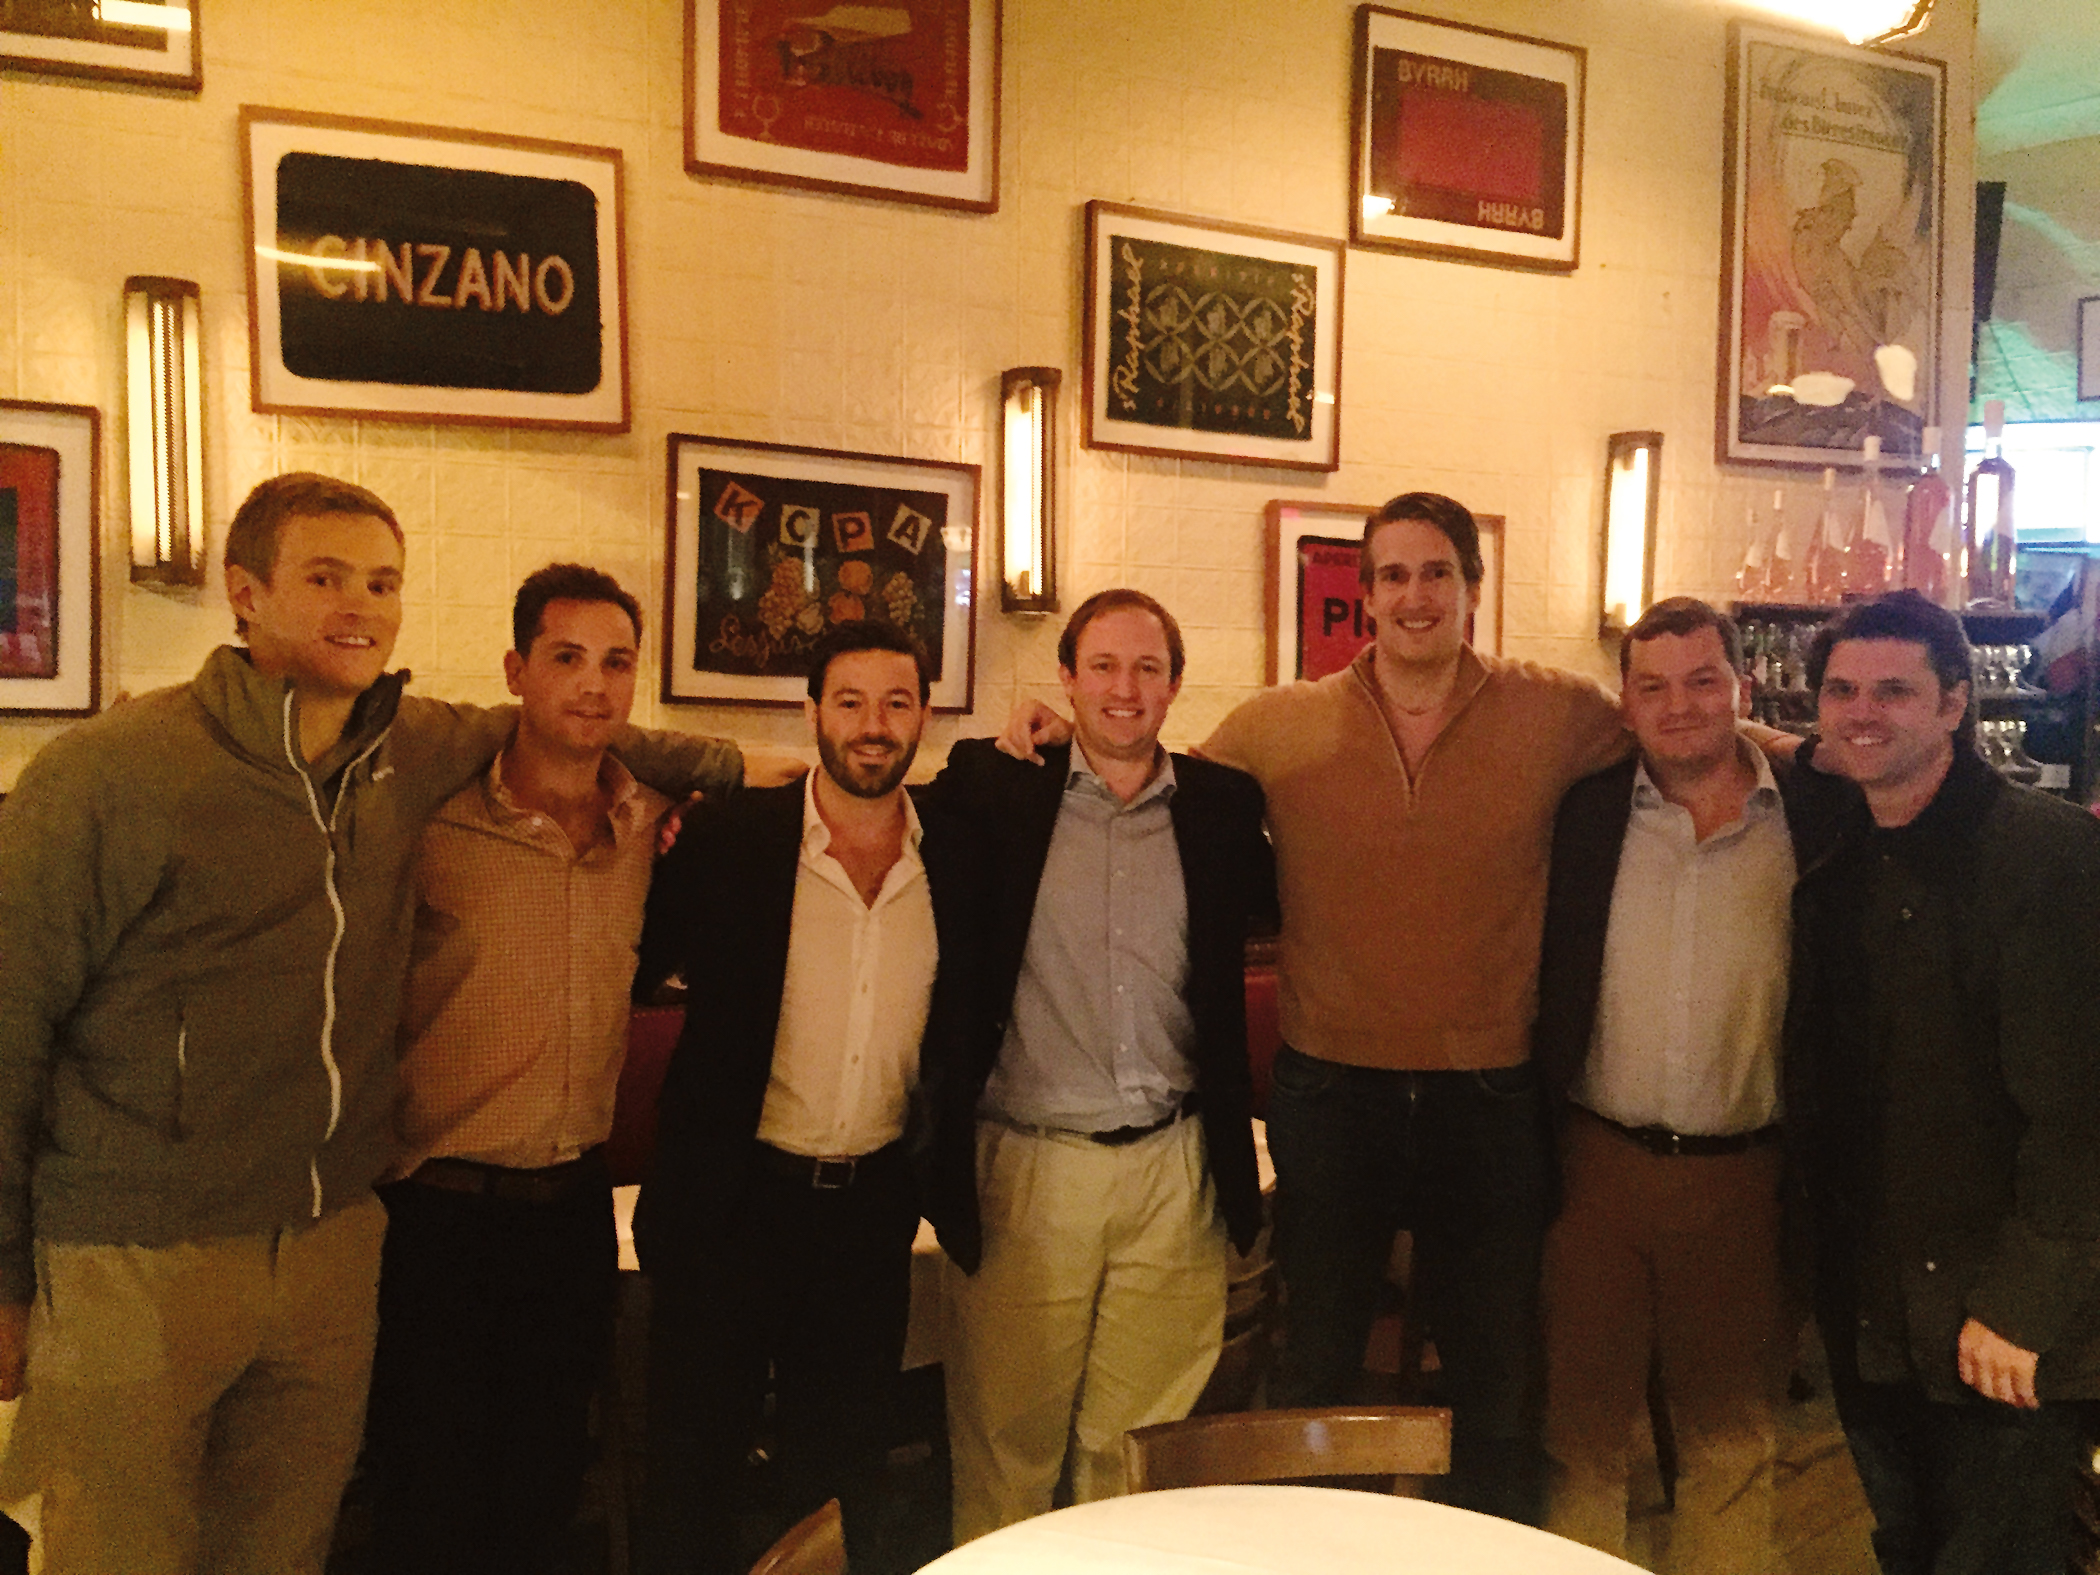 (L. to r.) Jamie Wilson '08, Christopher Beisswenger '08, Jason Bourgea '08, Benjamin Karp '08, Tom Hearne '08, Charles Vennat '07, and Mike Ott '08 had dinner in N.Y.C.